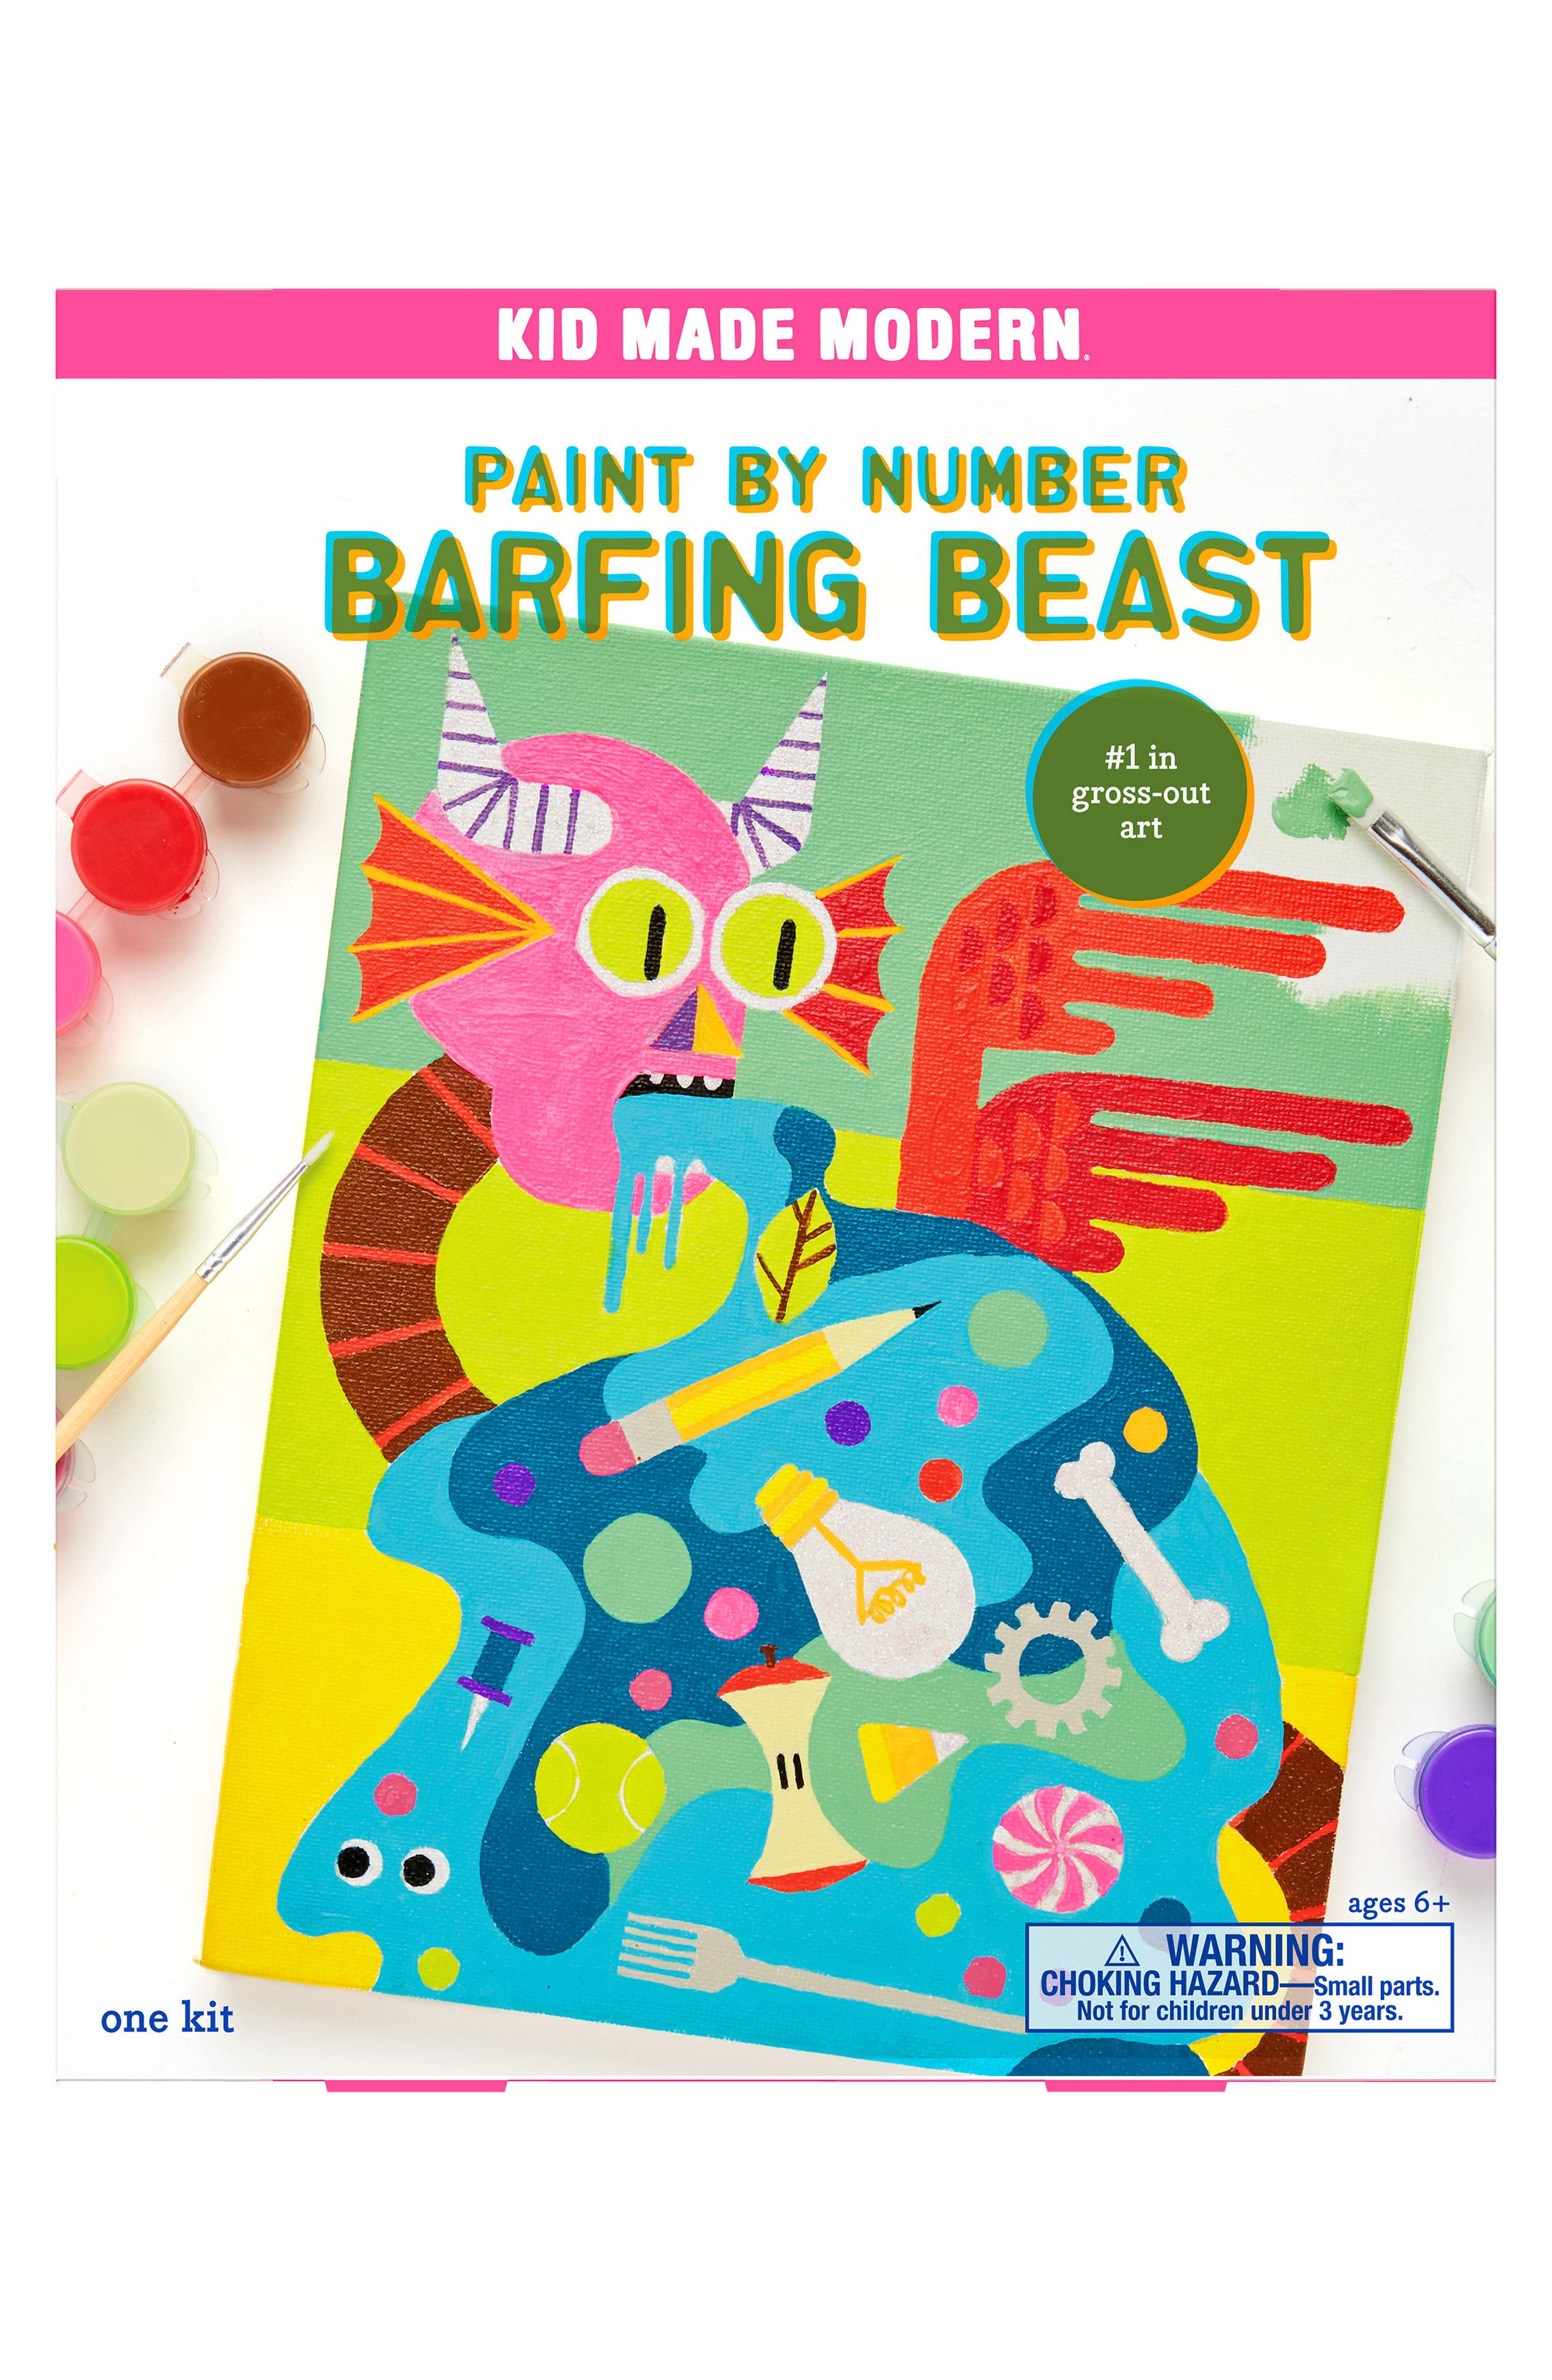 Barfing Beast Paint by Number Kit,                             Main thumbnail 1, color,                             300